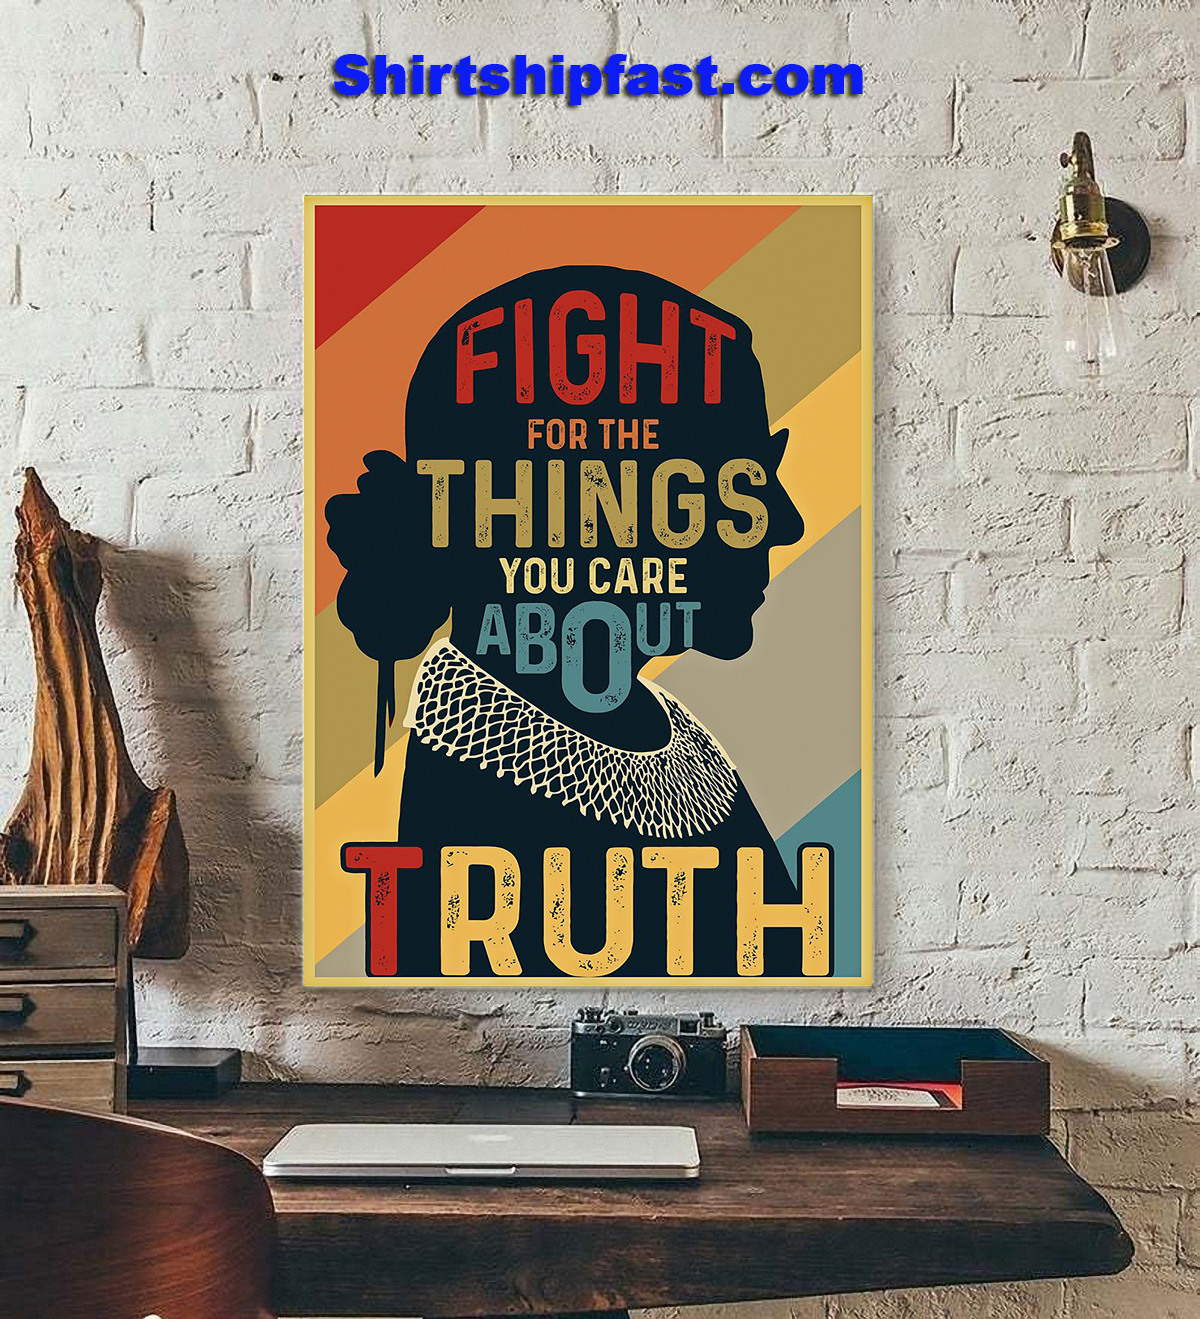 RBG fight for the things you care about truth poster - Picture 1